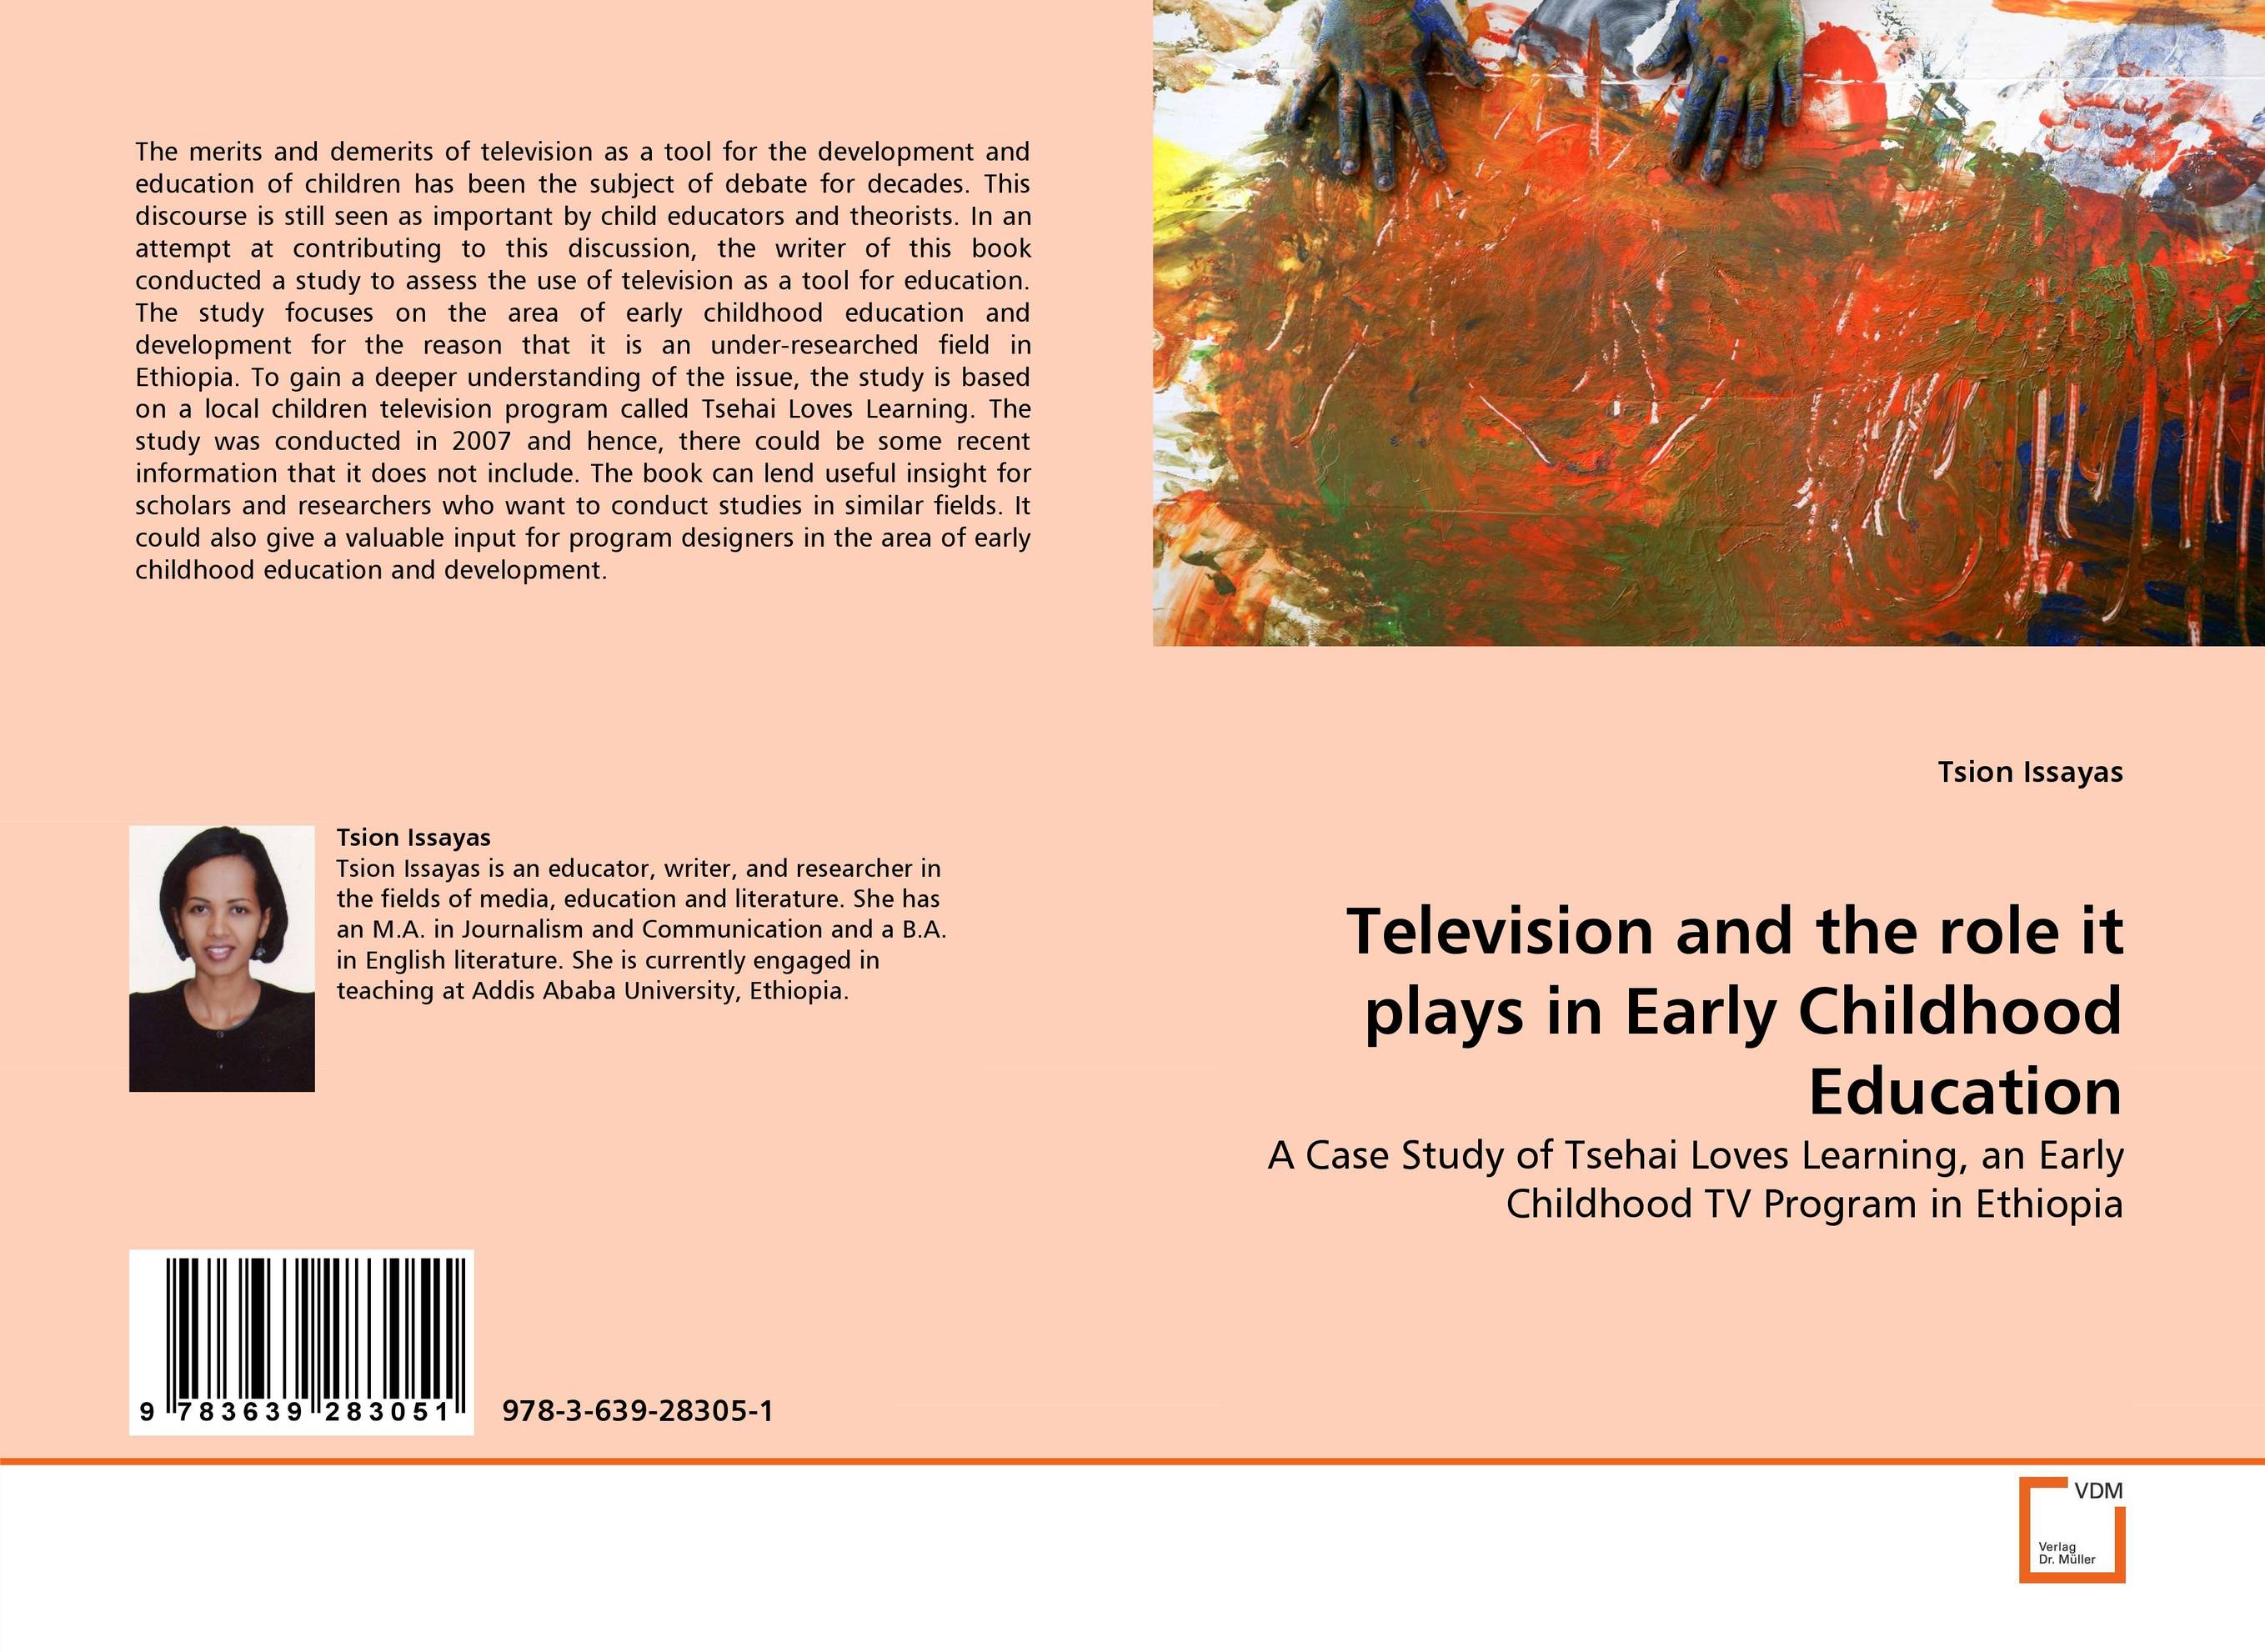 Television and the role it plays in Early Childhood Education the role of writing in undergraduate design education in the uk